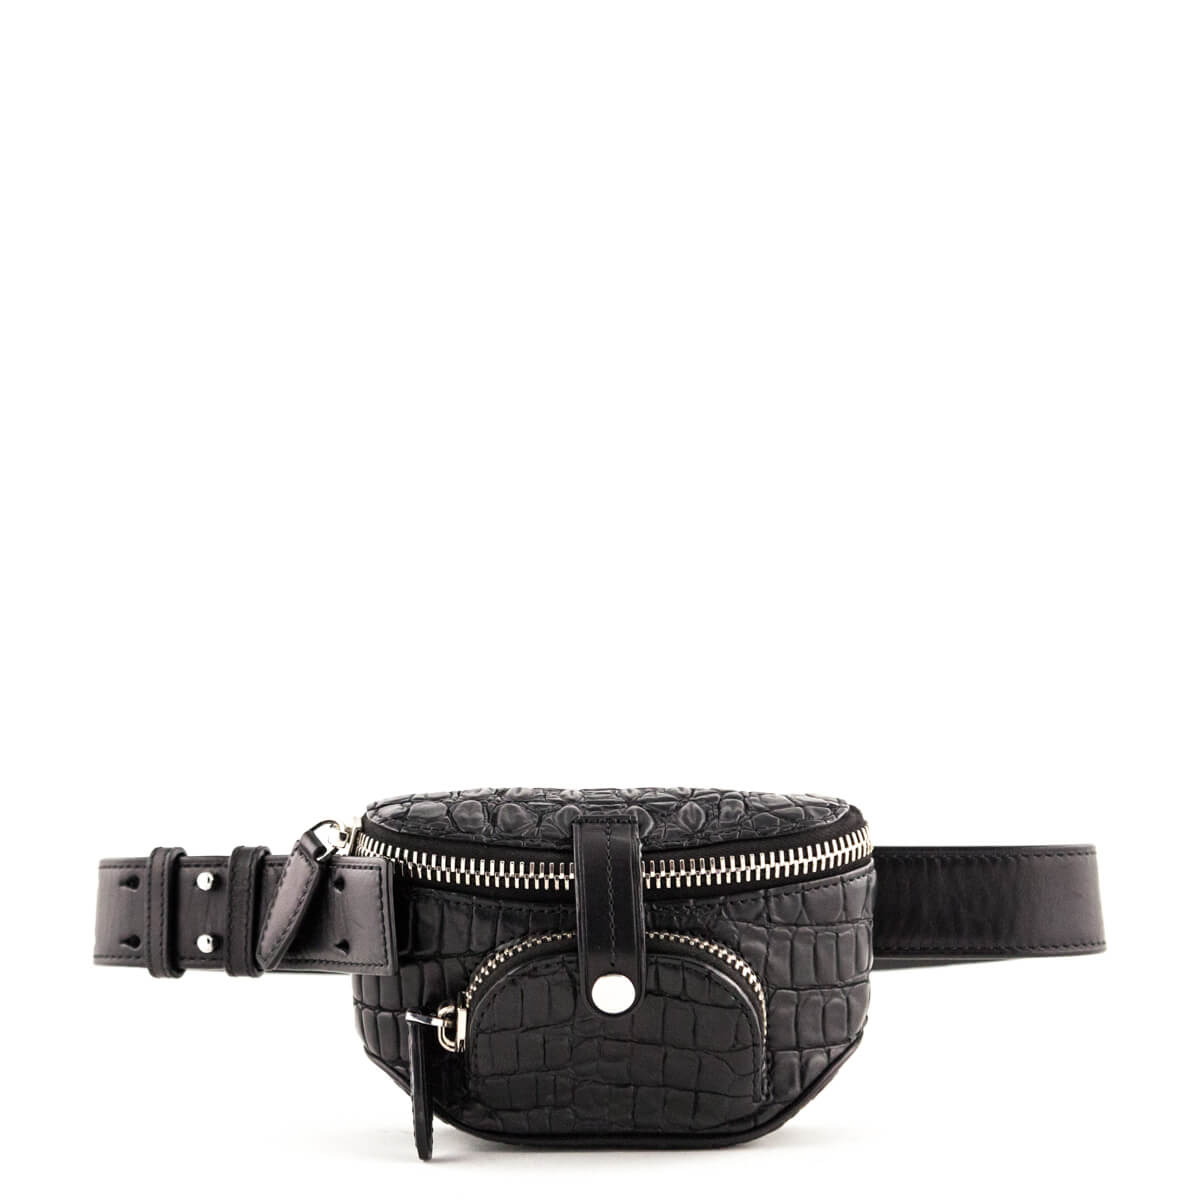 Alexander Wang Black Alligator Embossed Dumbo Waist Bag - LOVE that BAG -  Preowned Authentic Designer ...